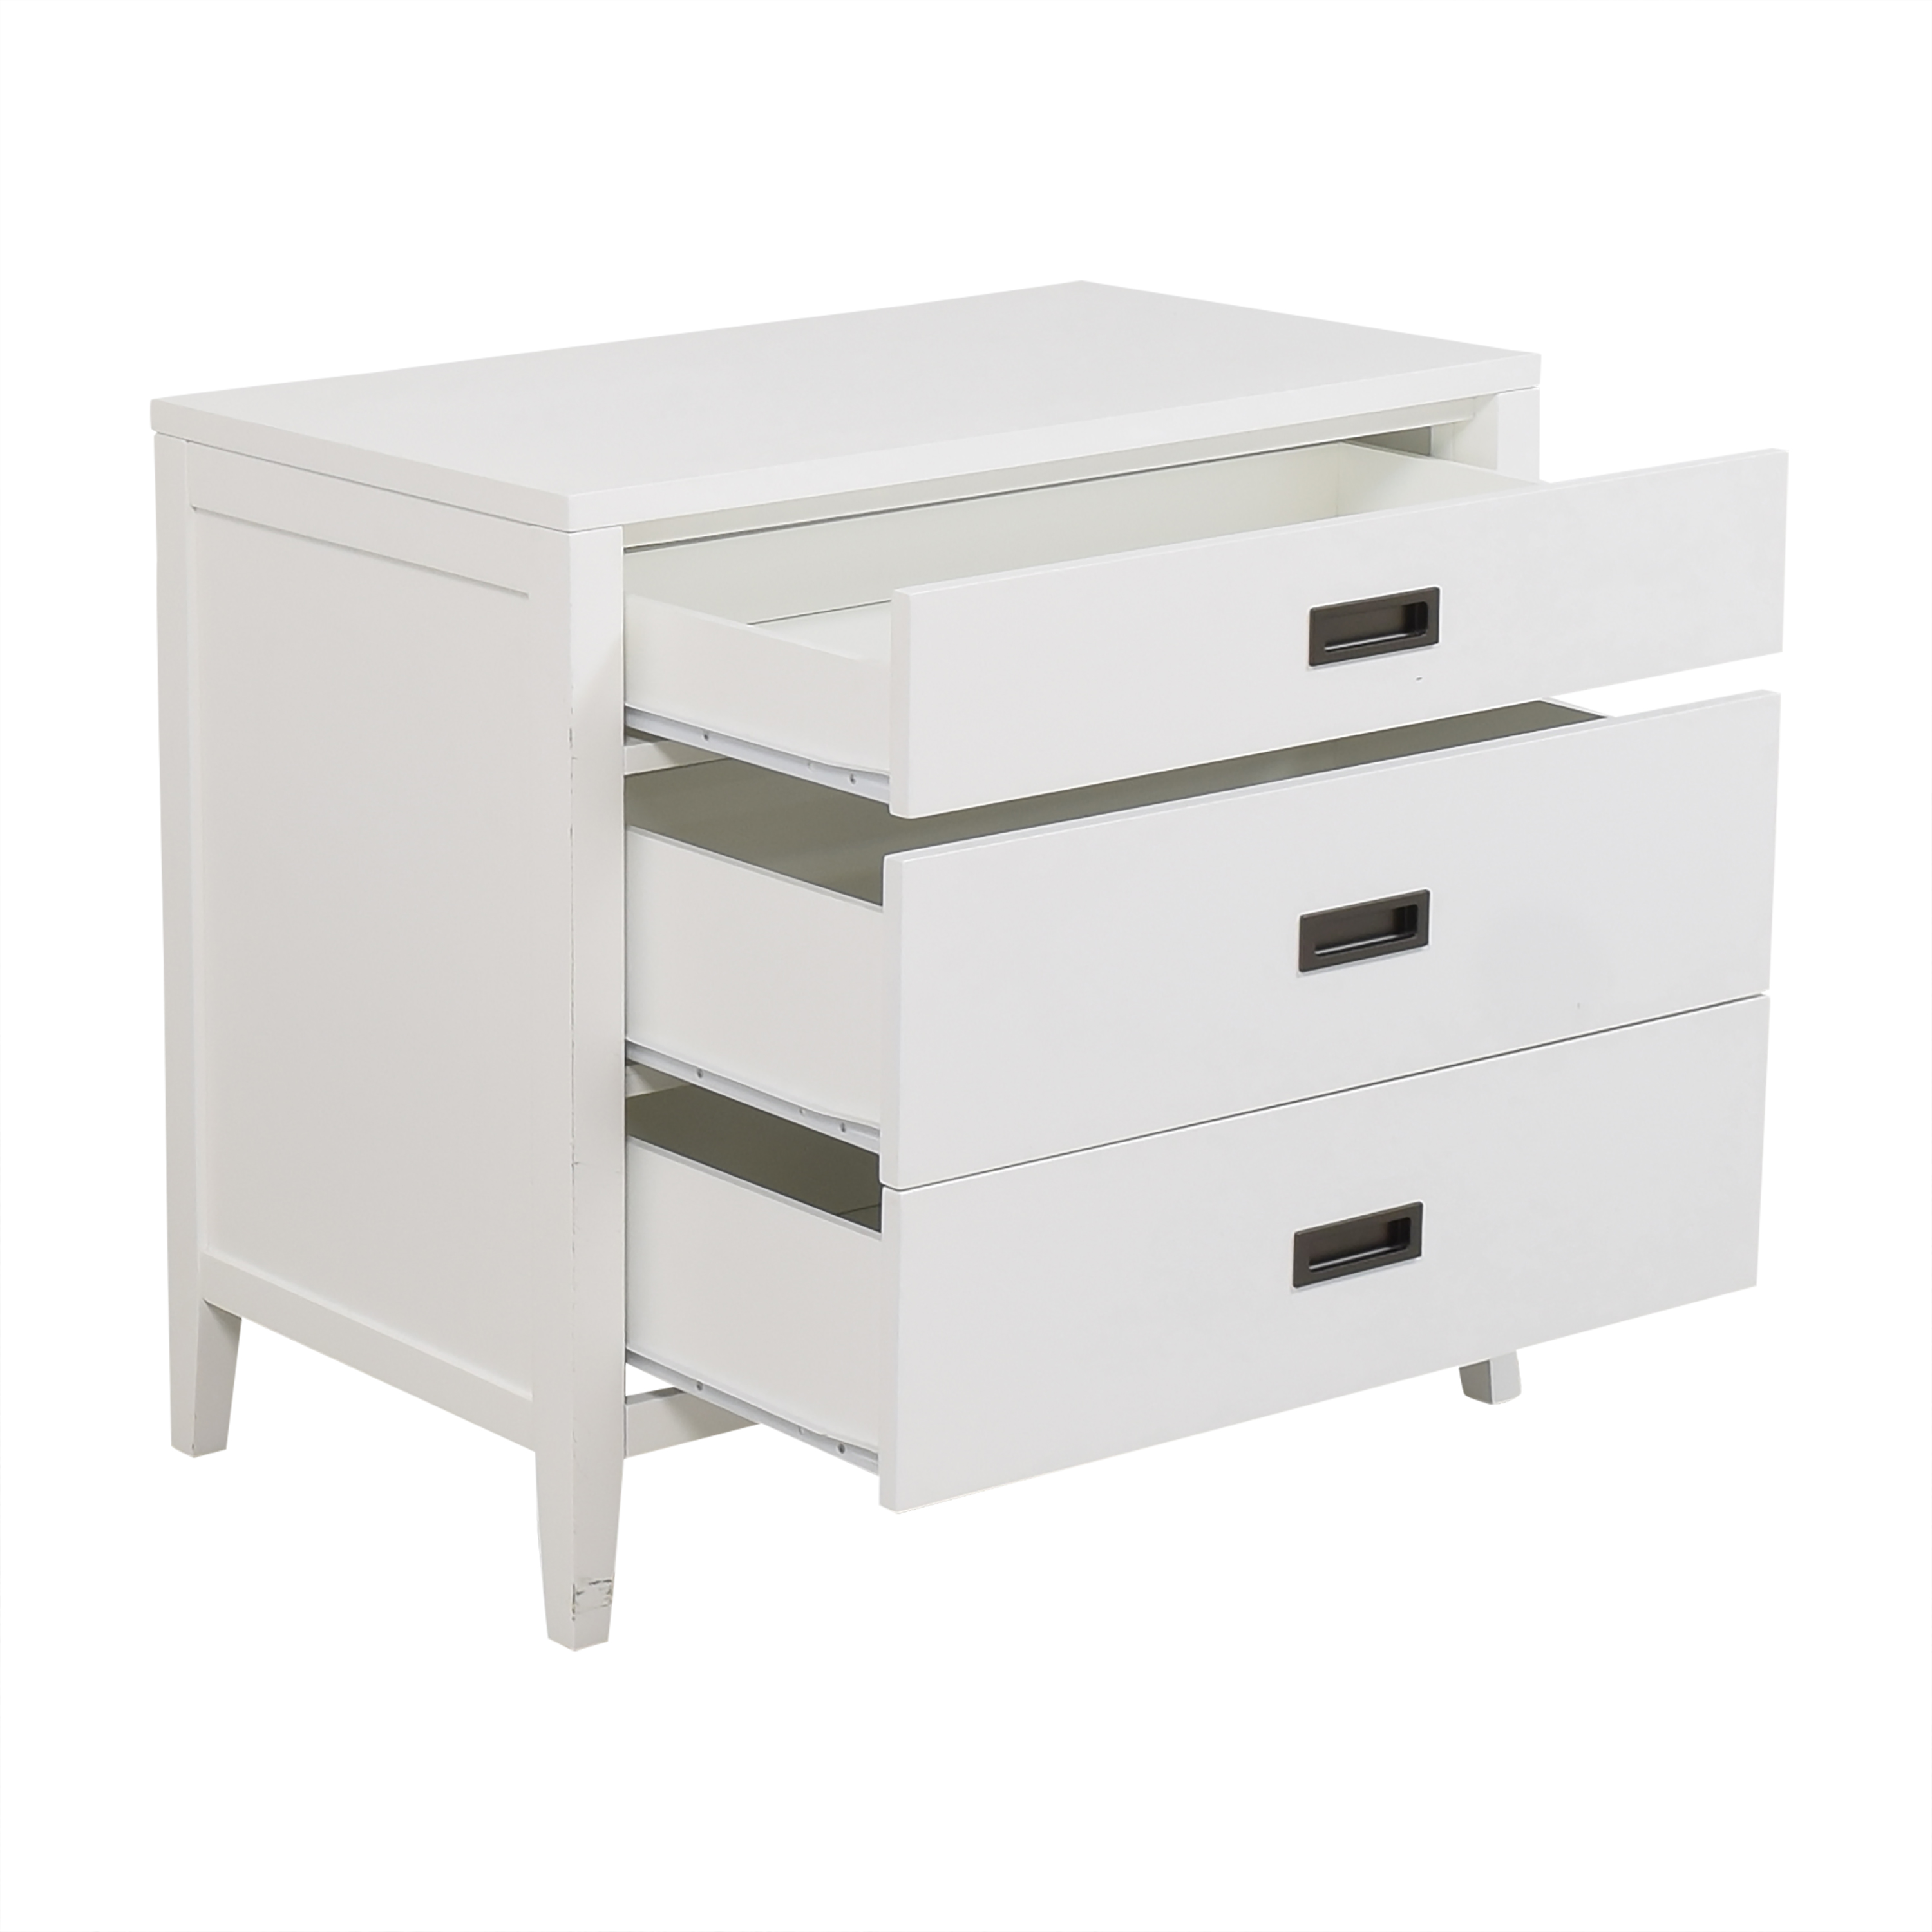 Crate & Barrel Crate & Barrel Arch Three Drawer Chest coupon